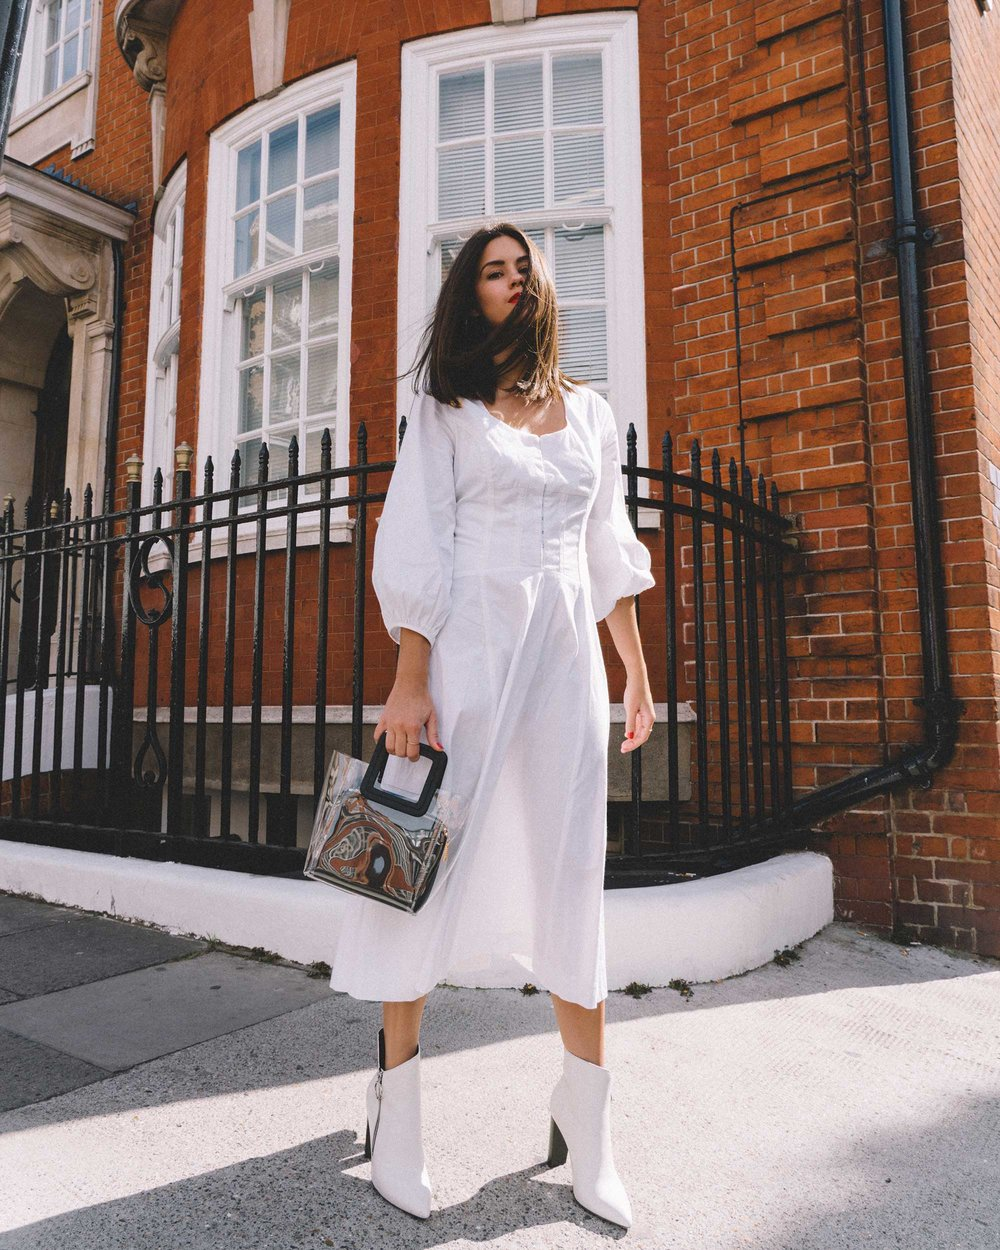 STAUD Eden Midi Dress, STAUD clear and black shirley mini PVC and leather tote, London Fashion Week Outfit20.jpg